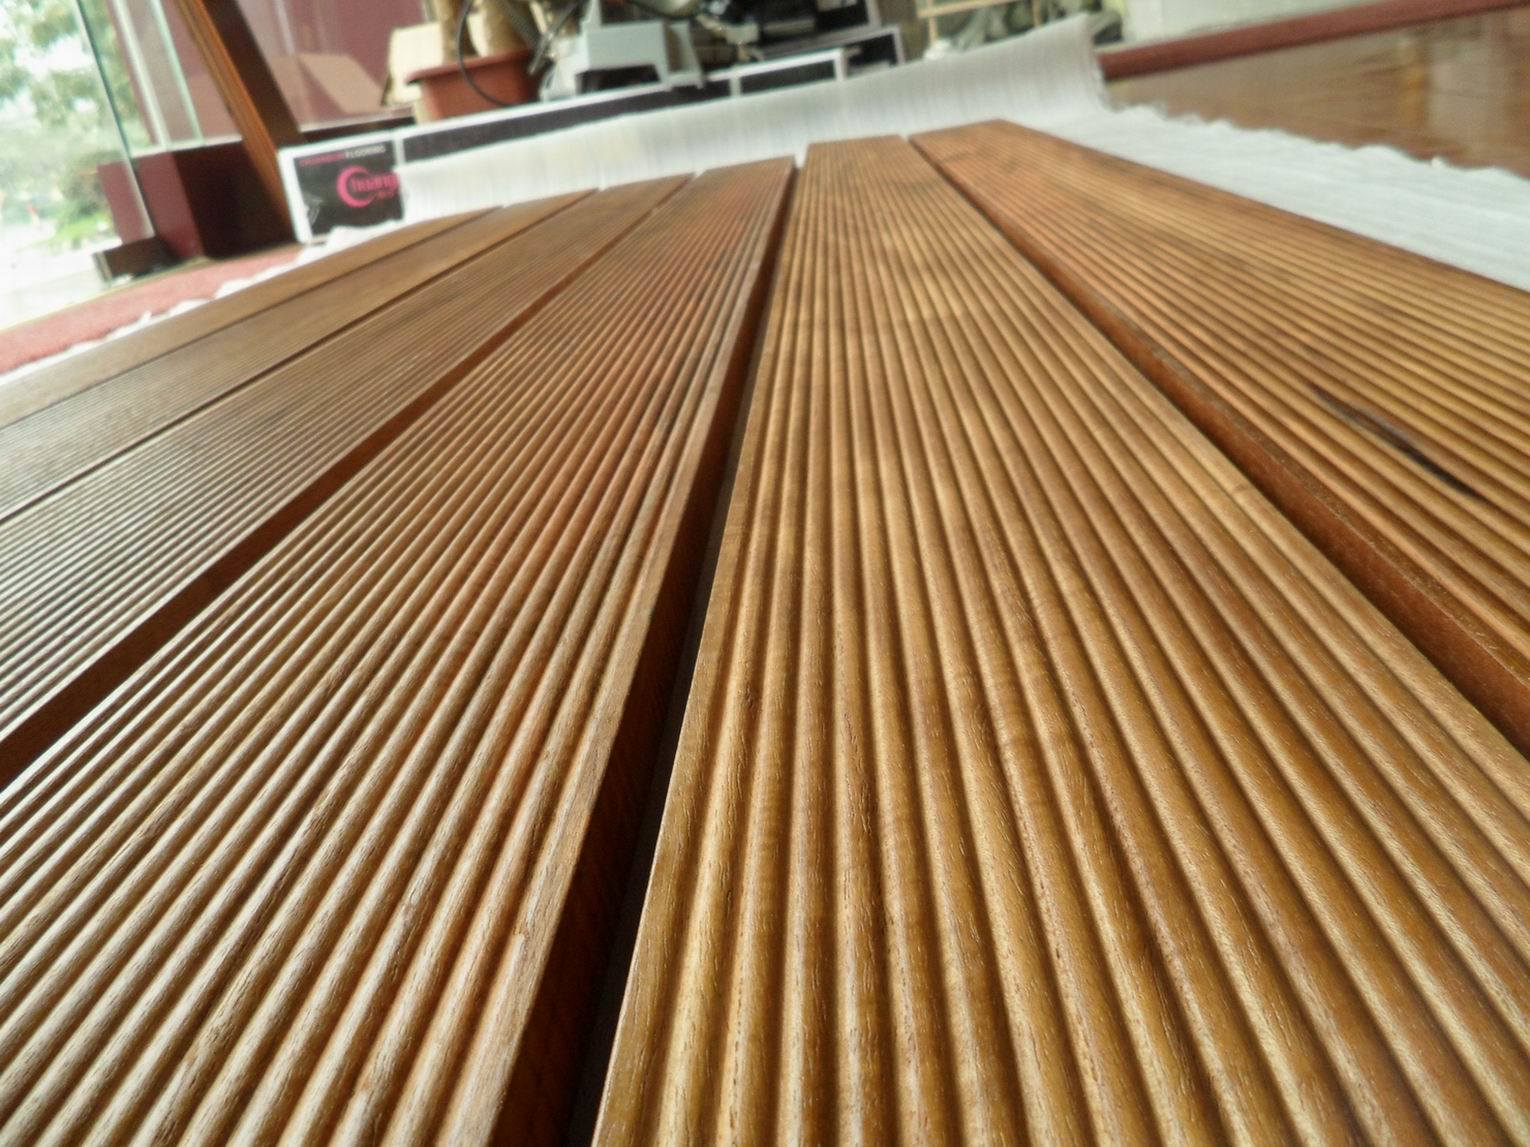 China burma teak hardwood timber decking btd xviii for Which timber for decking